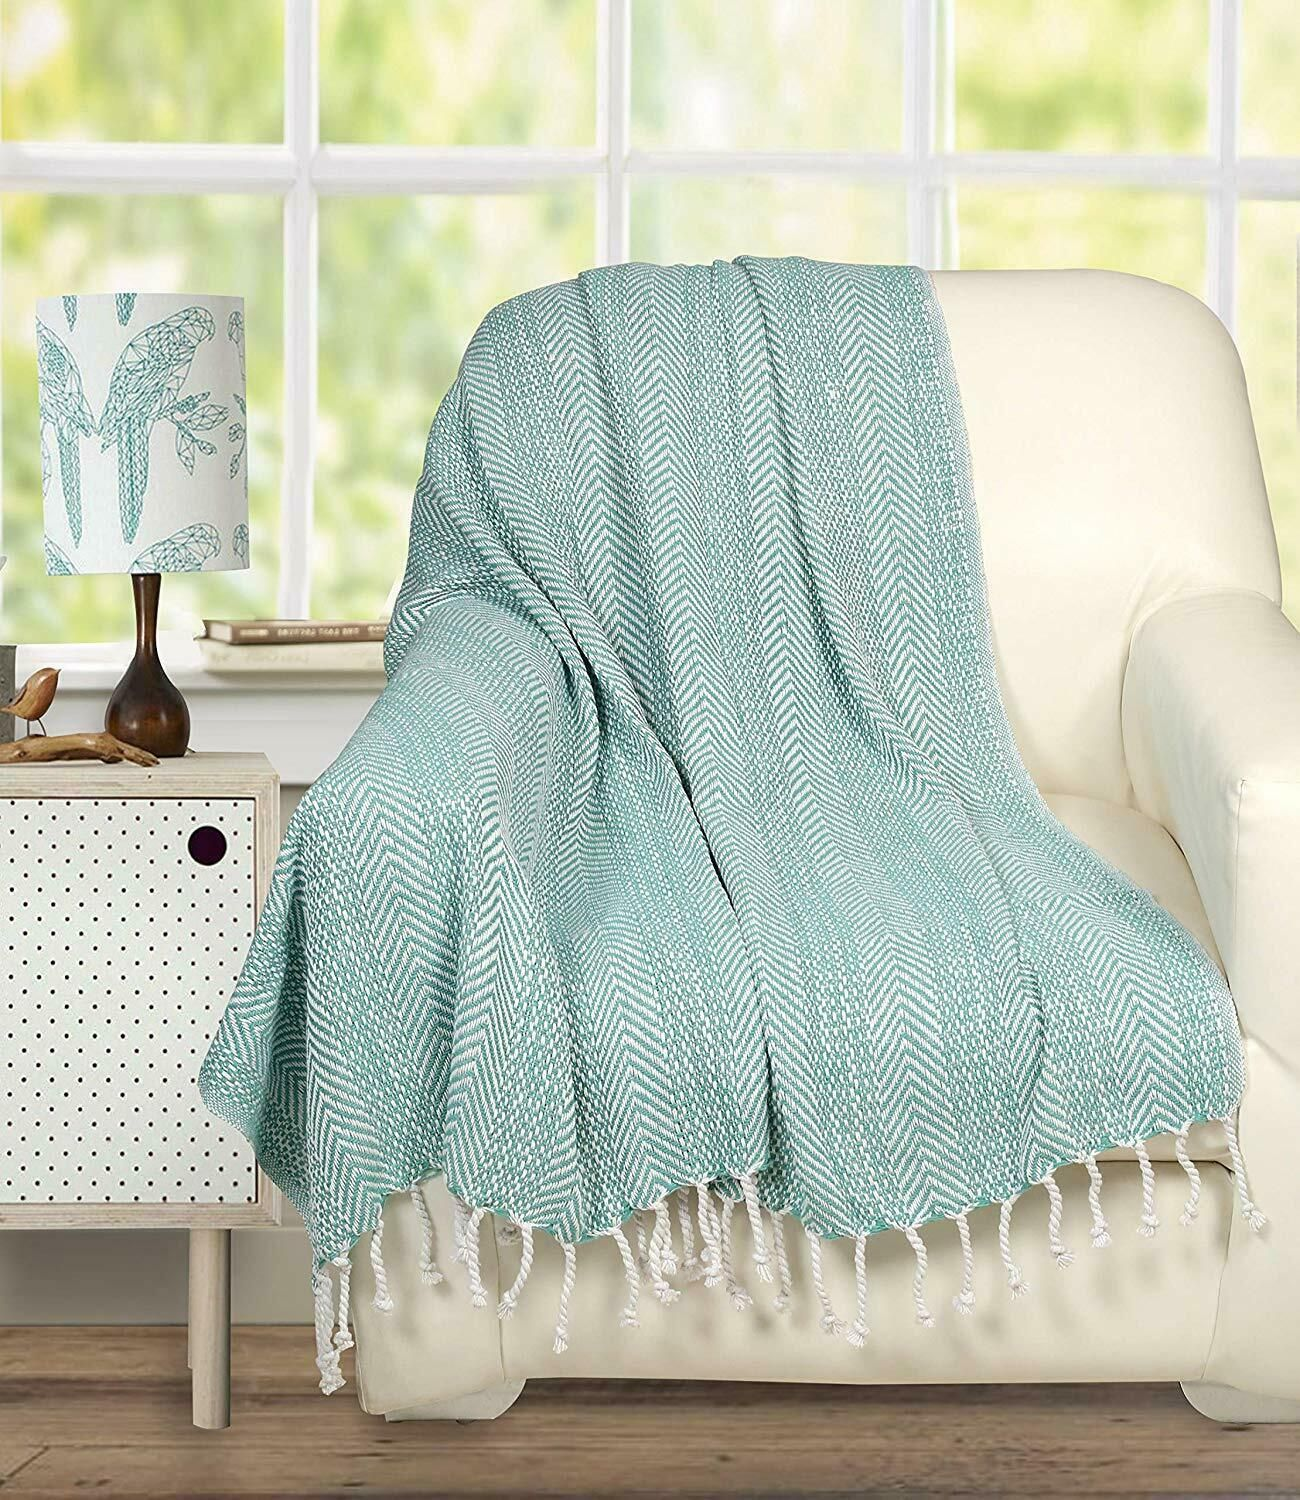 Cotton Chevron Blanket Throw With Knotted Fringes For Chair Couch